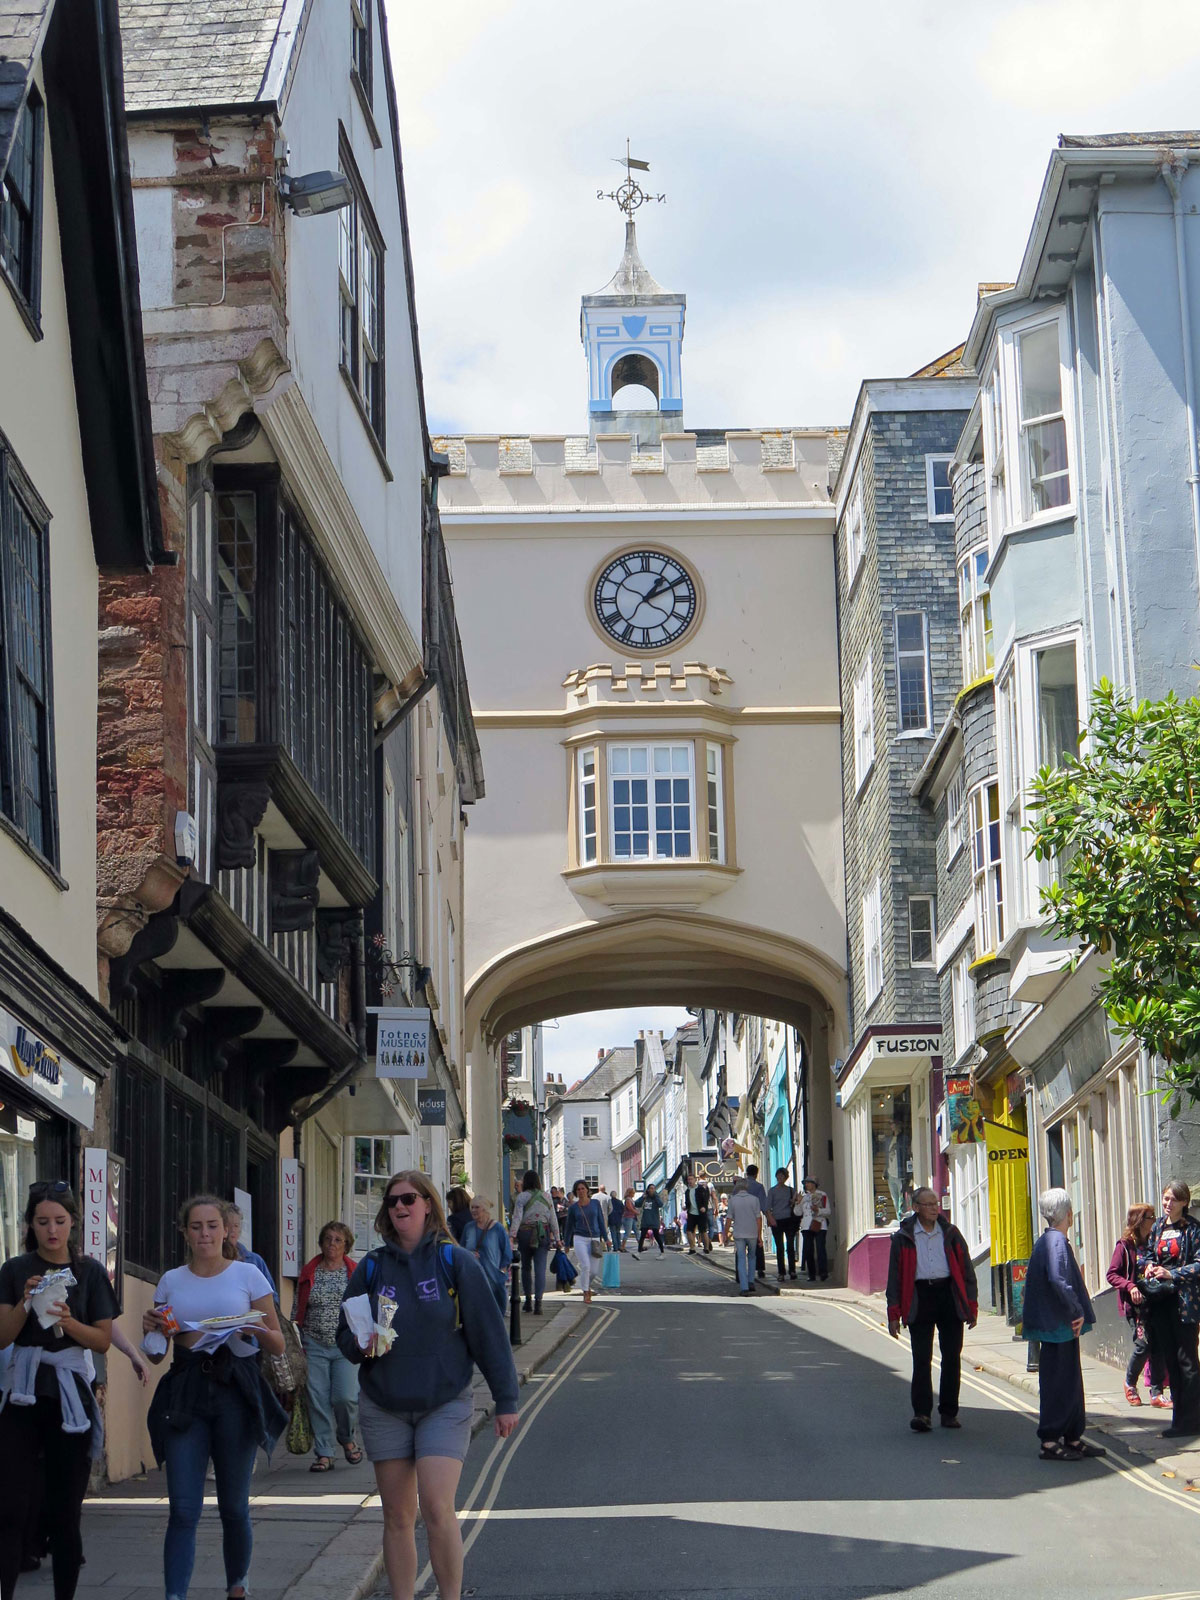 The Eastgate Arch